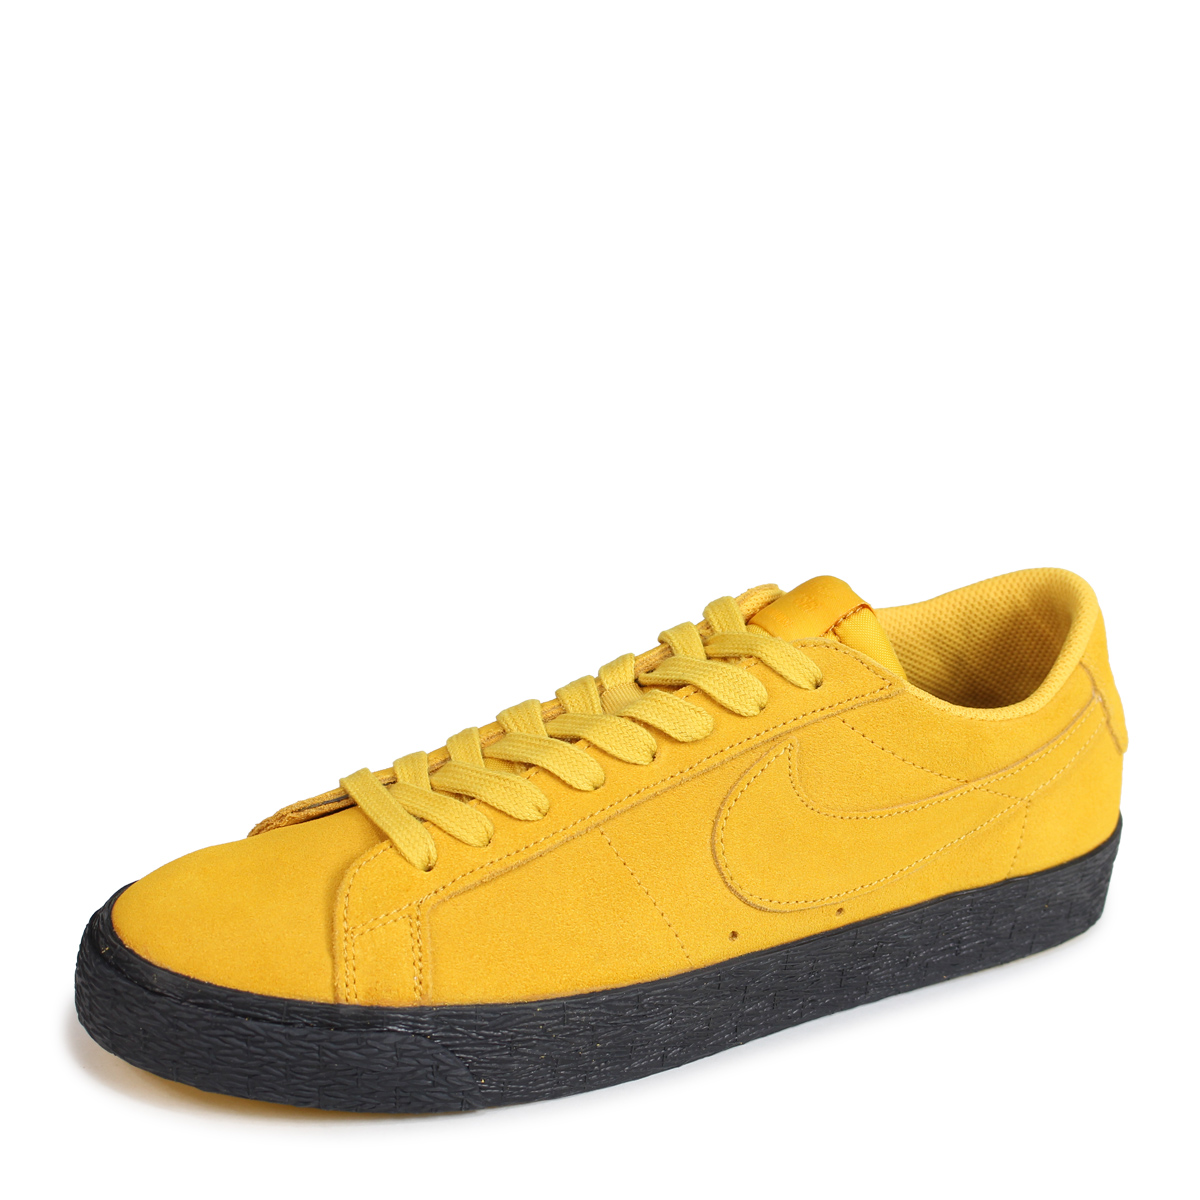 the best attitude 52734 3e79f ALLSPORTS NIKE SB ZOOM BLAZER LOW Nike blazer low sneakers men 864,347-701  yellow load planned Shinnyu load in reservation product 724 containing  187 ...